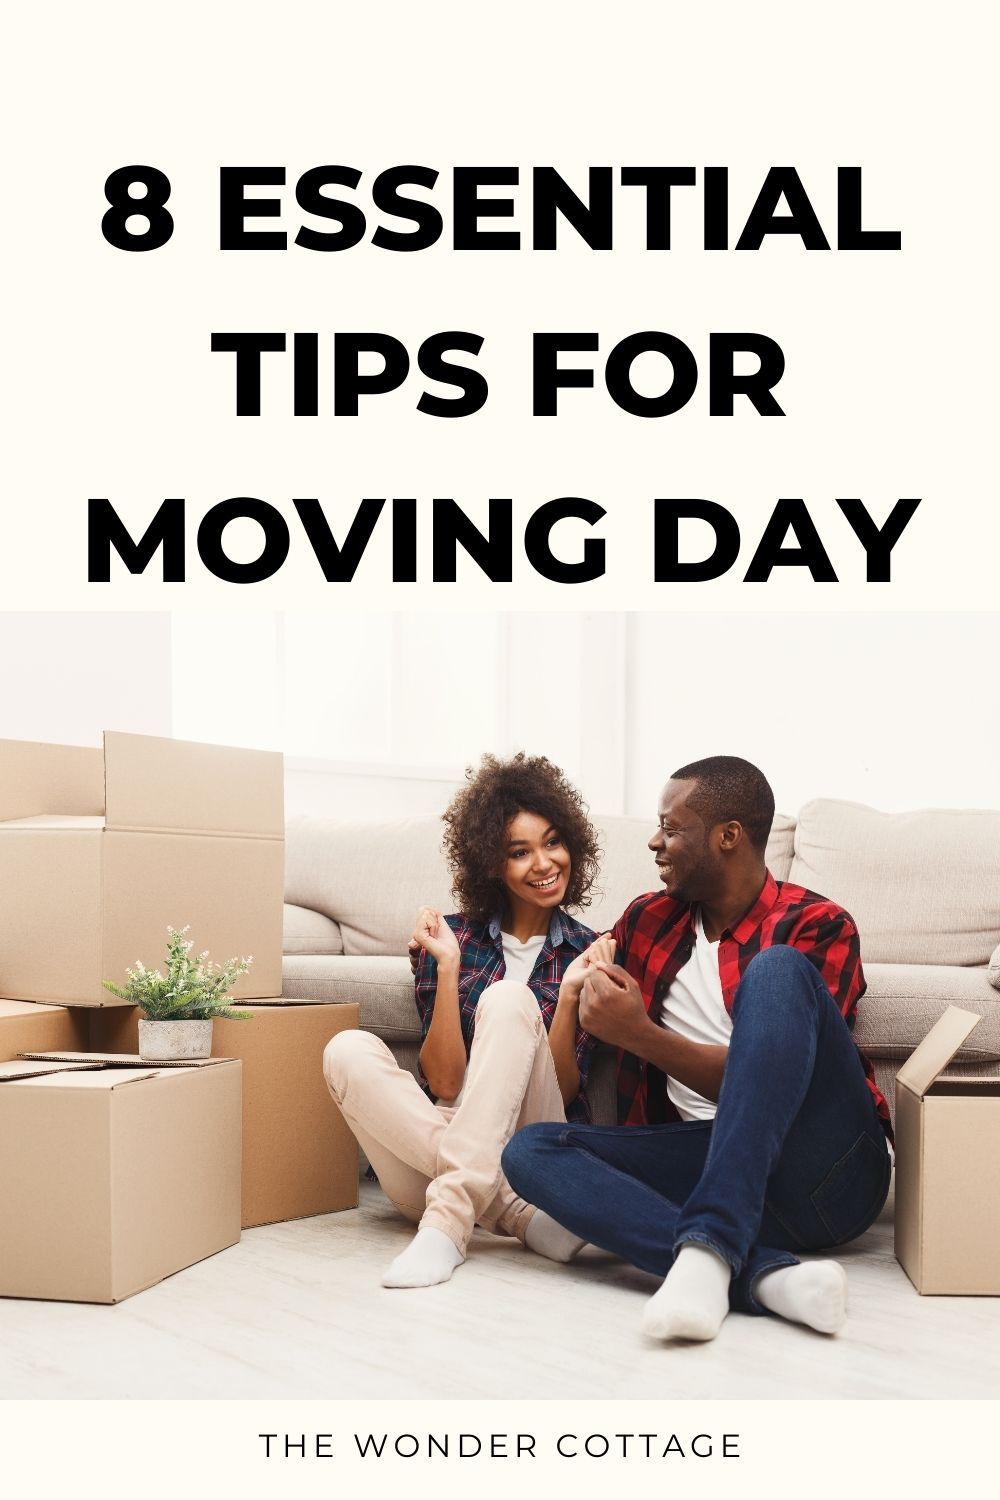 8 essential tips for moving day